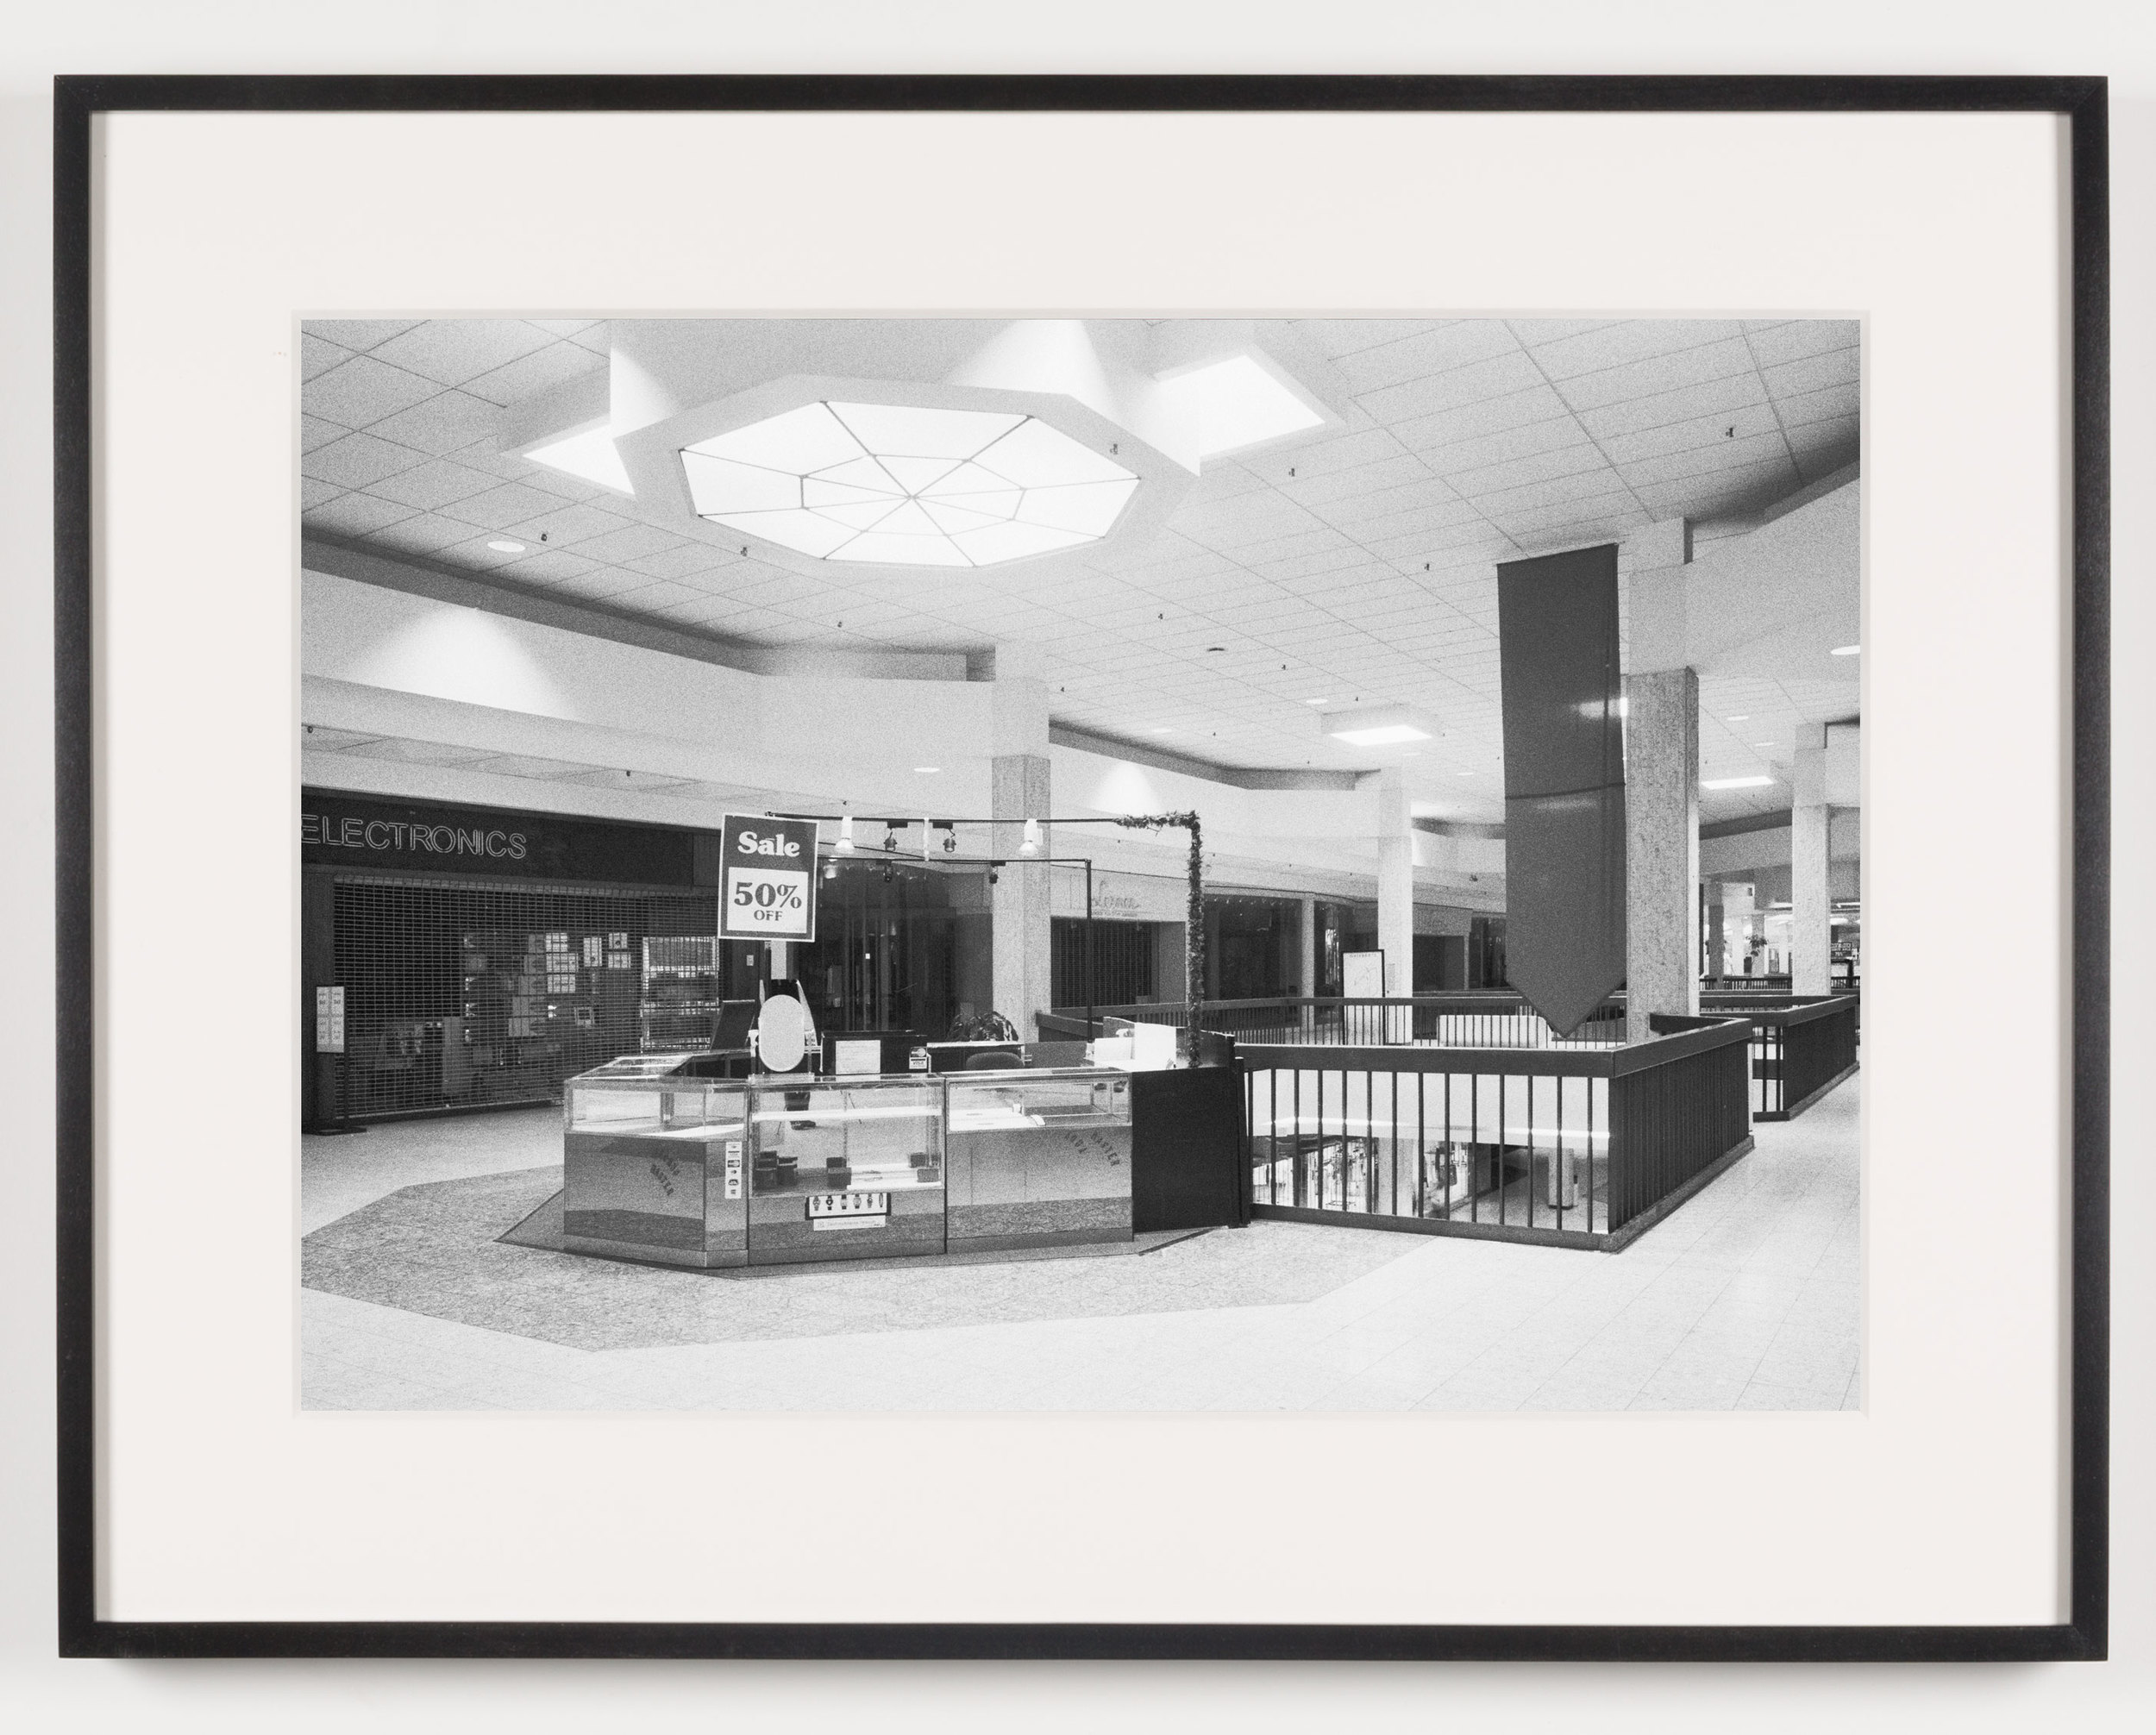 Randall Park Mall ('Electronics') North Randall, OH, Est. 1976, Demo. 2014    2011   Epson Ultrachrome K3 archival ink jet print on Hahnemühle Photo Rag paper  21 5/8 x 28 1/8 inches   A Diagram of Forces, 2011